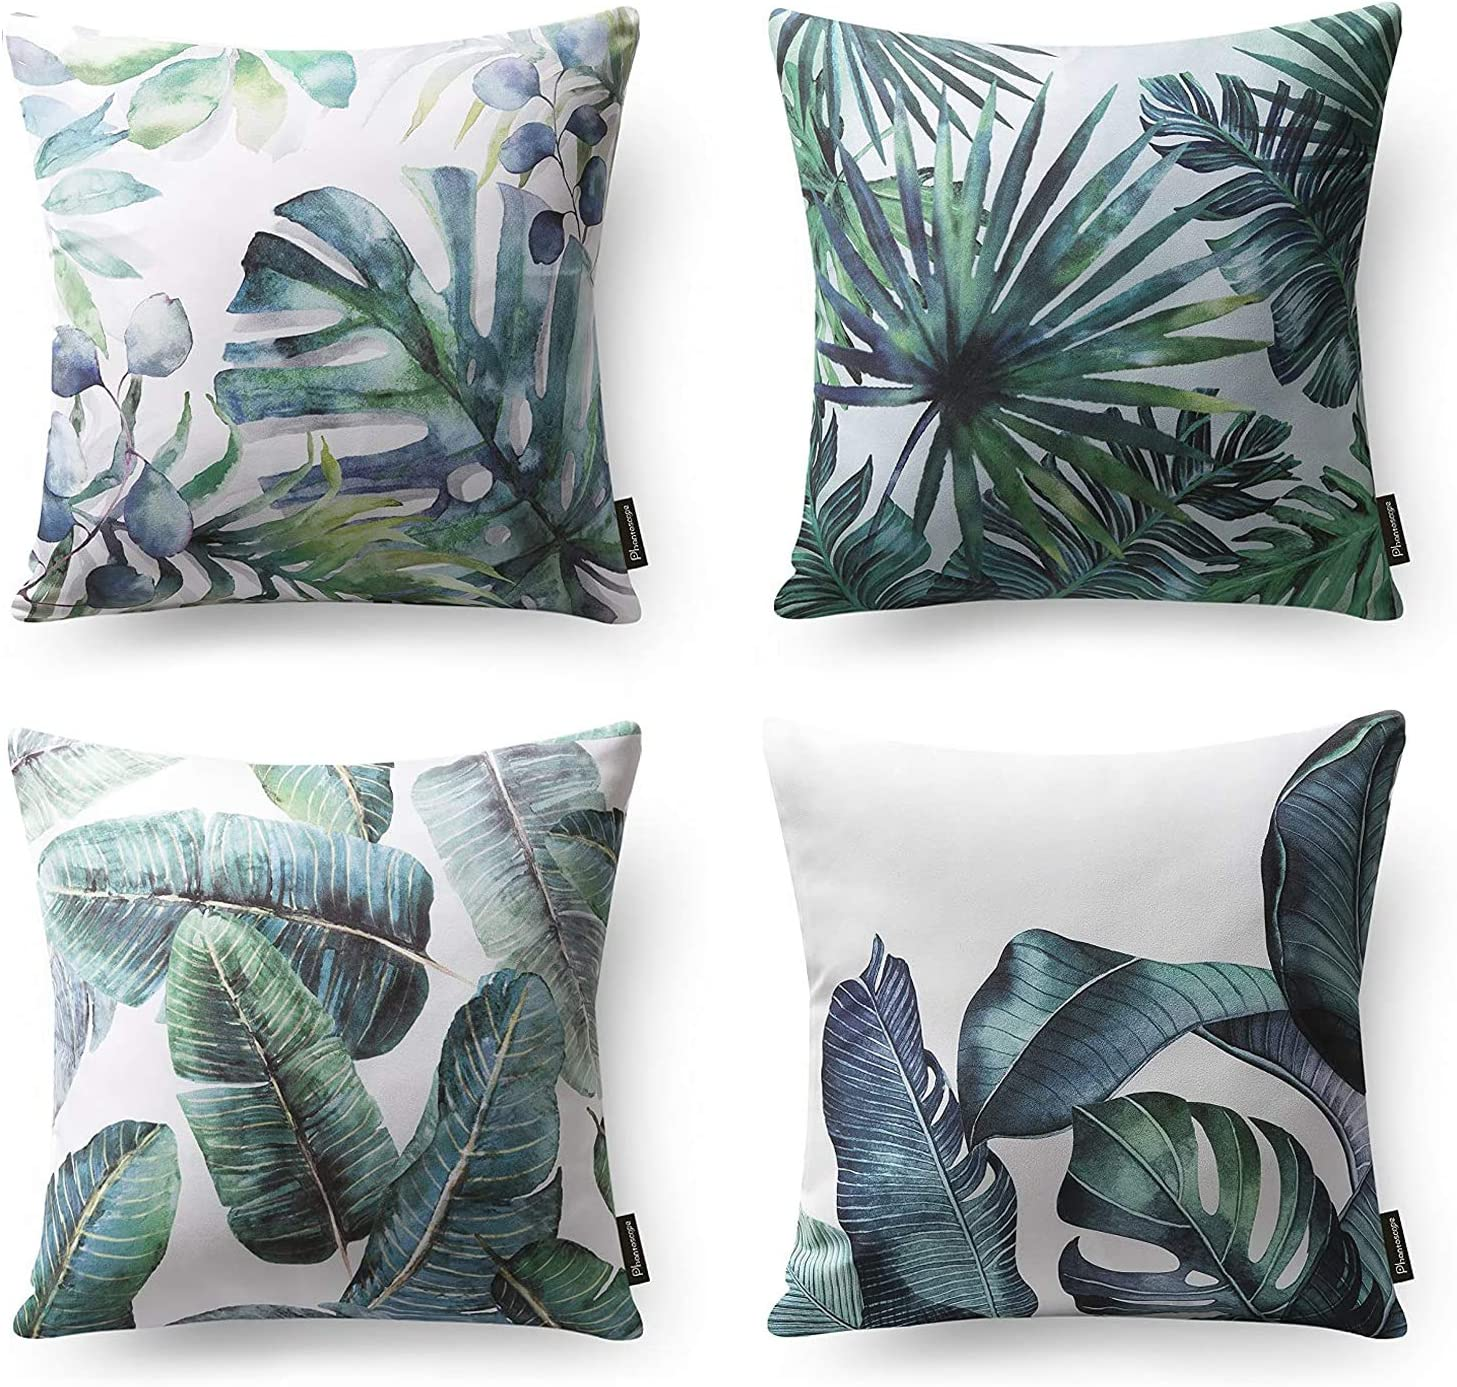 Phantoscope Set of 4 Tropical Palm Leaves Plant Printed Throw Pillow Case Cushion Cover, Dark Green, 18 x 18 inches, 45 x 45 cm